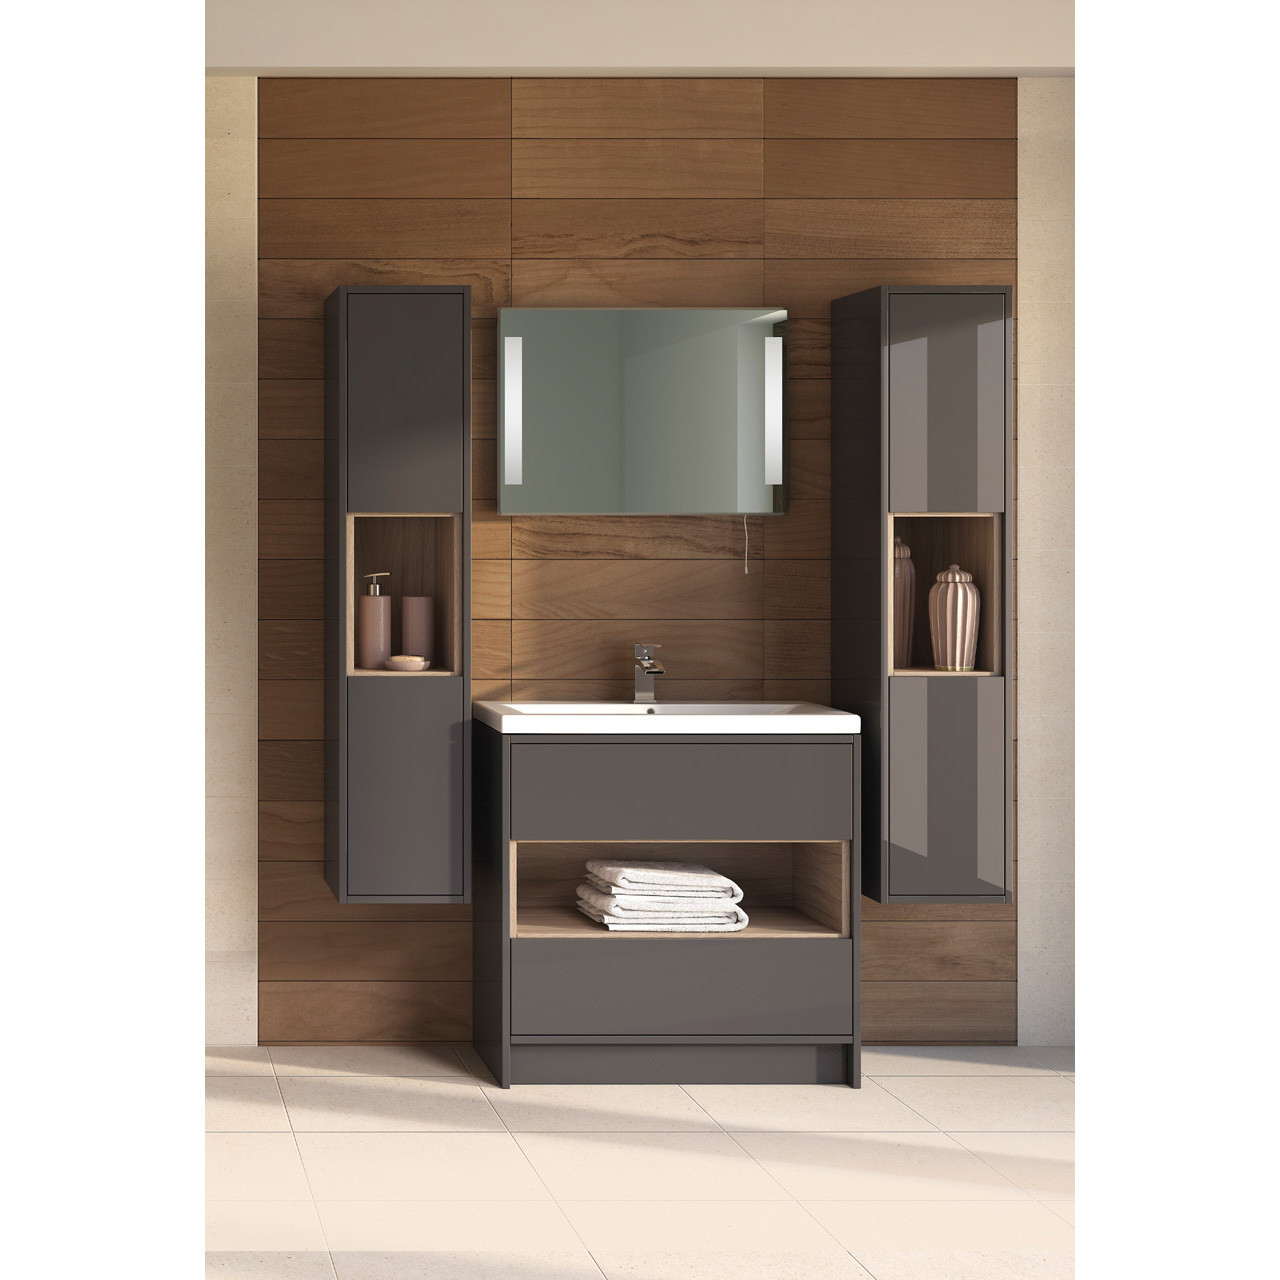 Hudson Reed Coast Grey Gloss Floor Standing 600mm Cabinet & 18mm profile Basin - FMC876 & NVM003